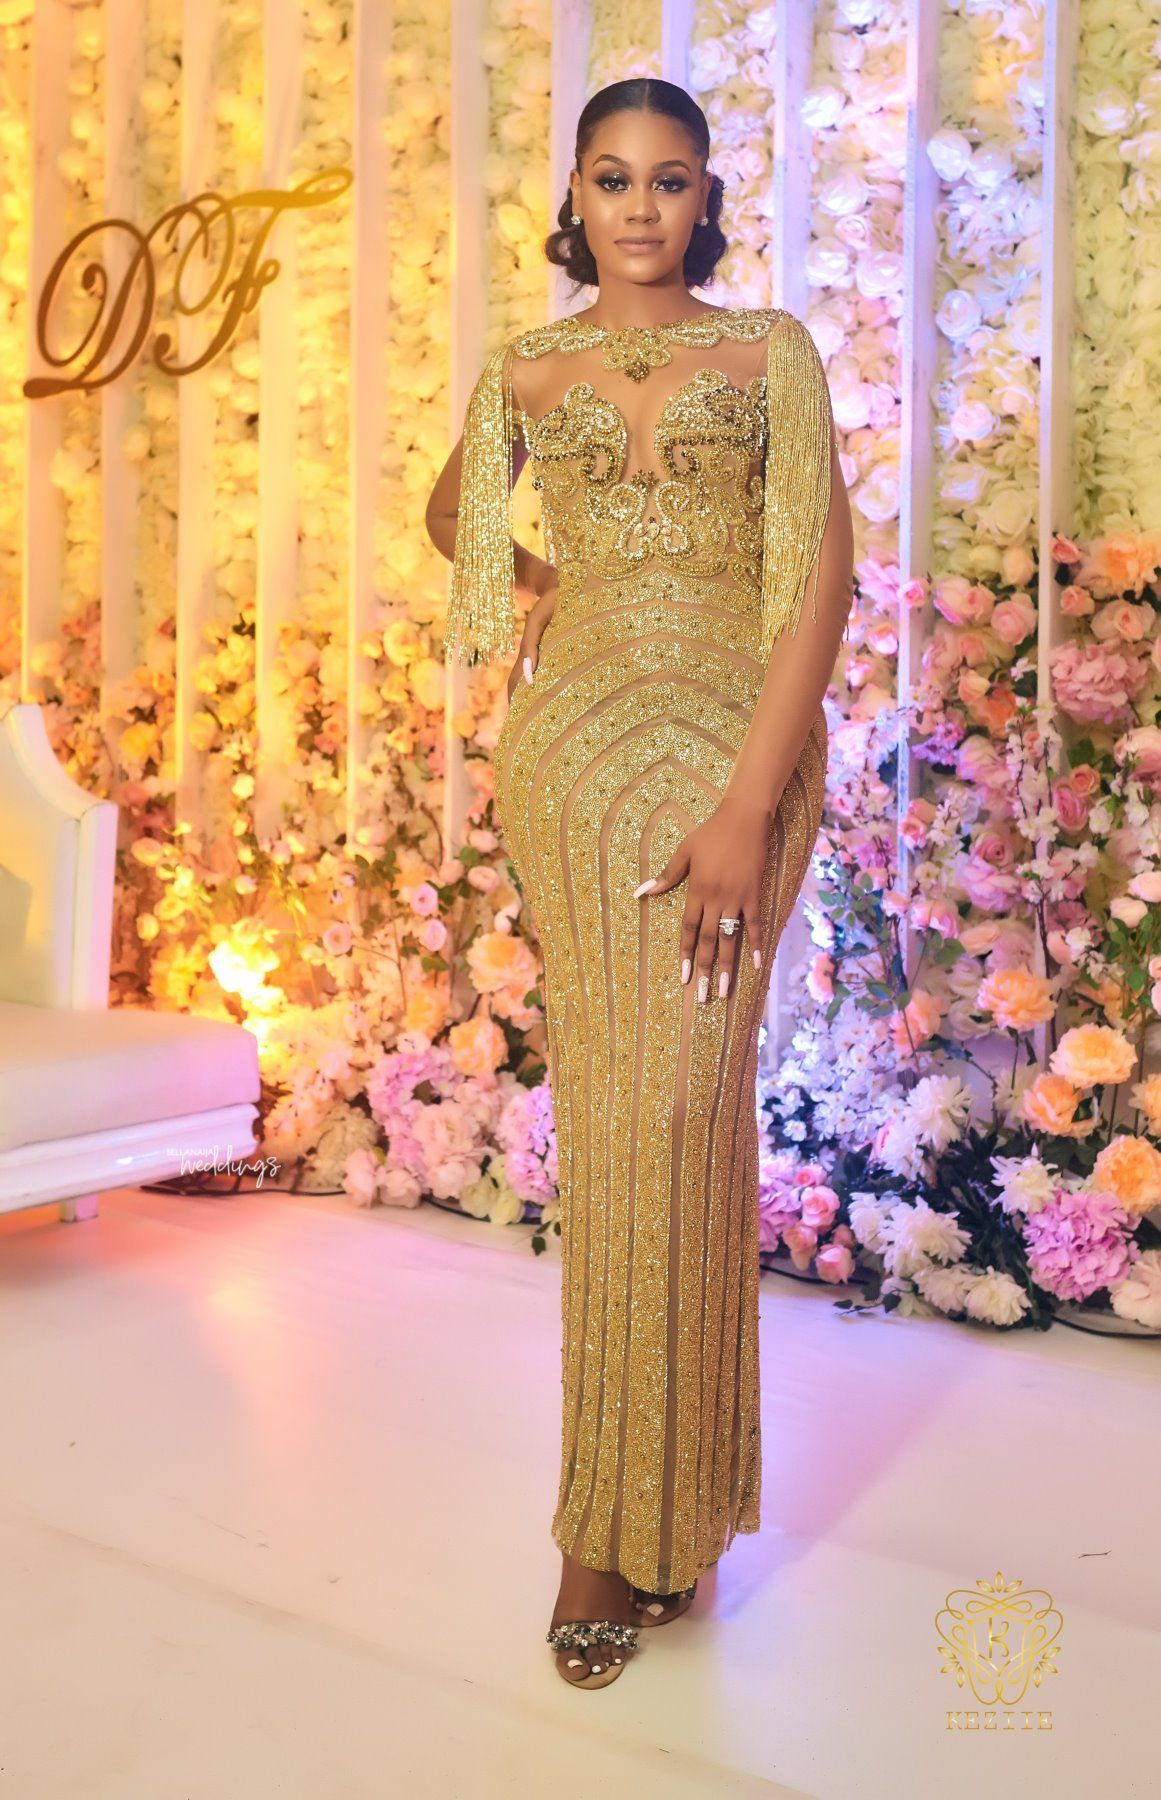 I Knew It Had To Be Her Or Nobody Debbie Femi S Fairytale Wedding Bride Reception Dresses Latest African Fashion Dresses African Fashion Dresses